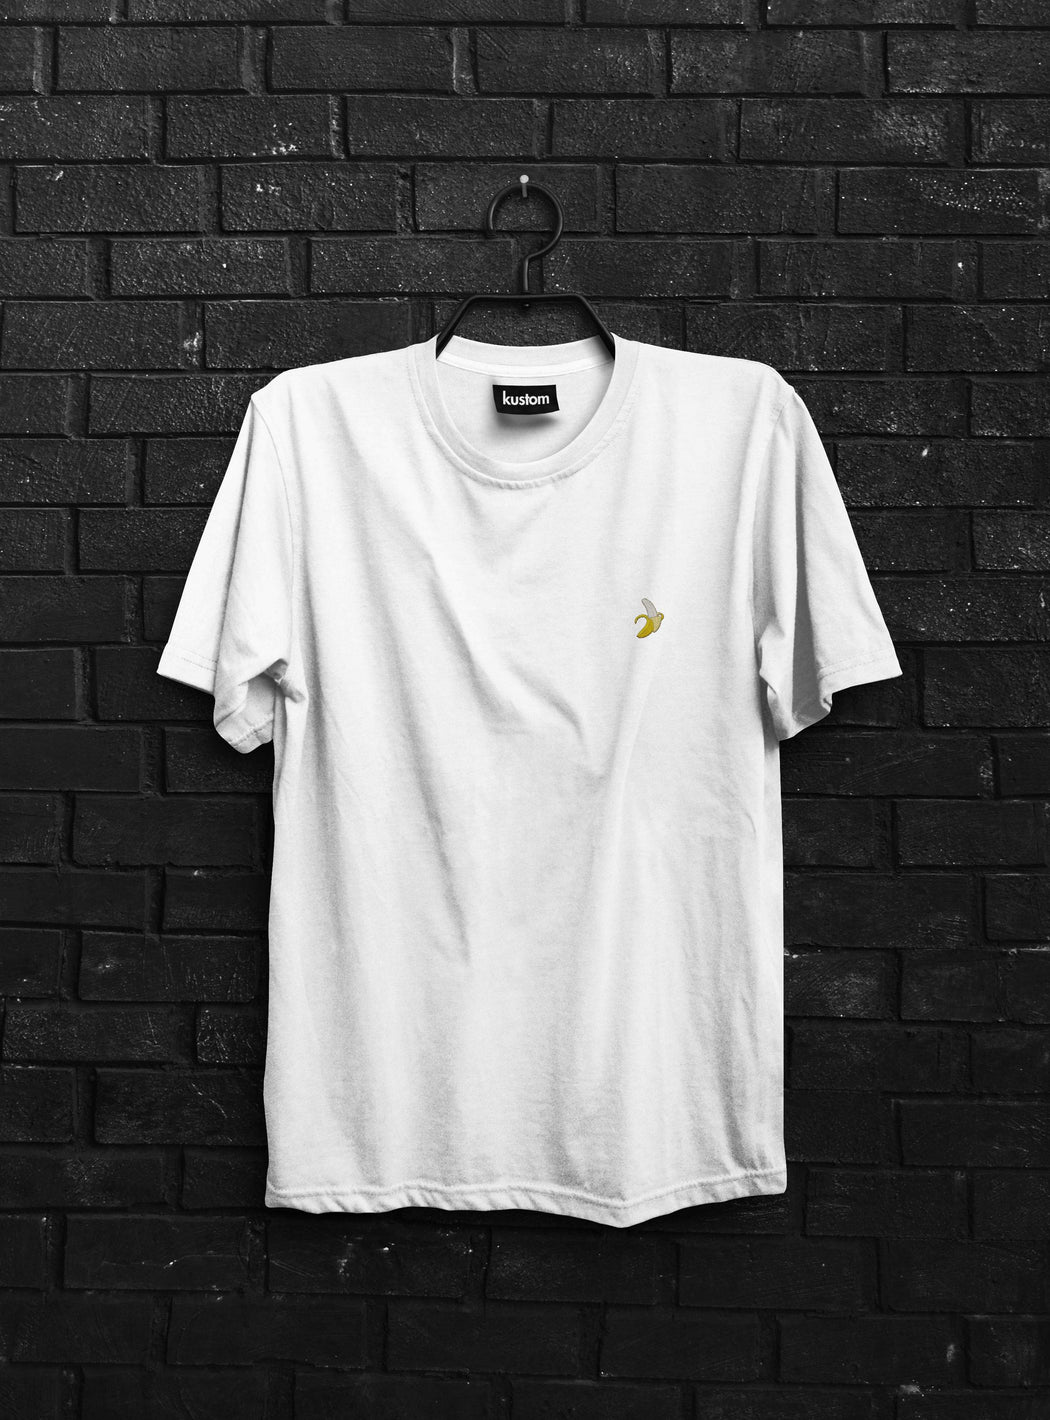 Banana Embroidered White Tee